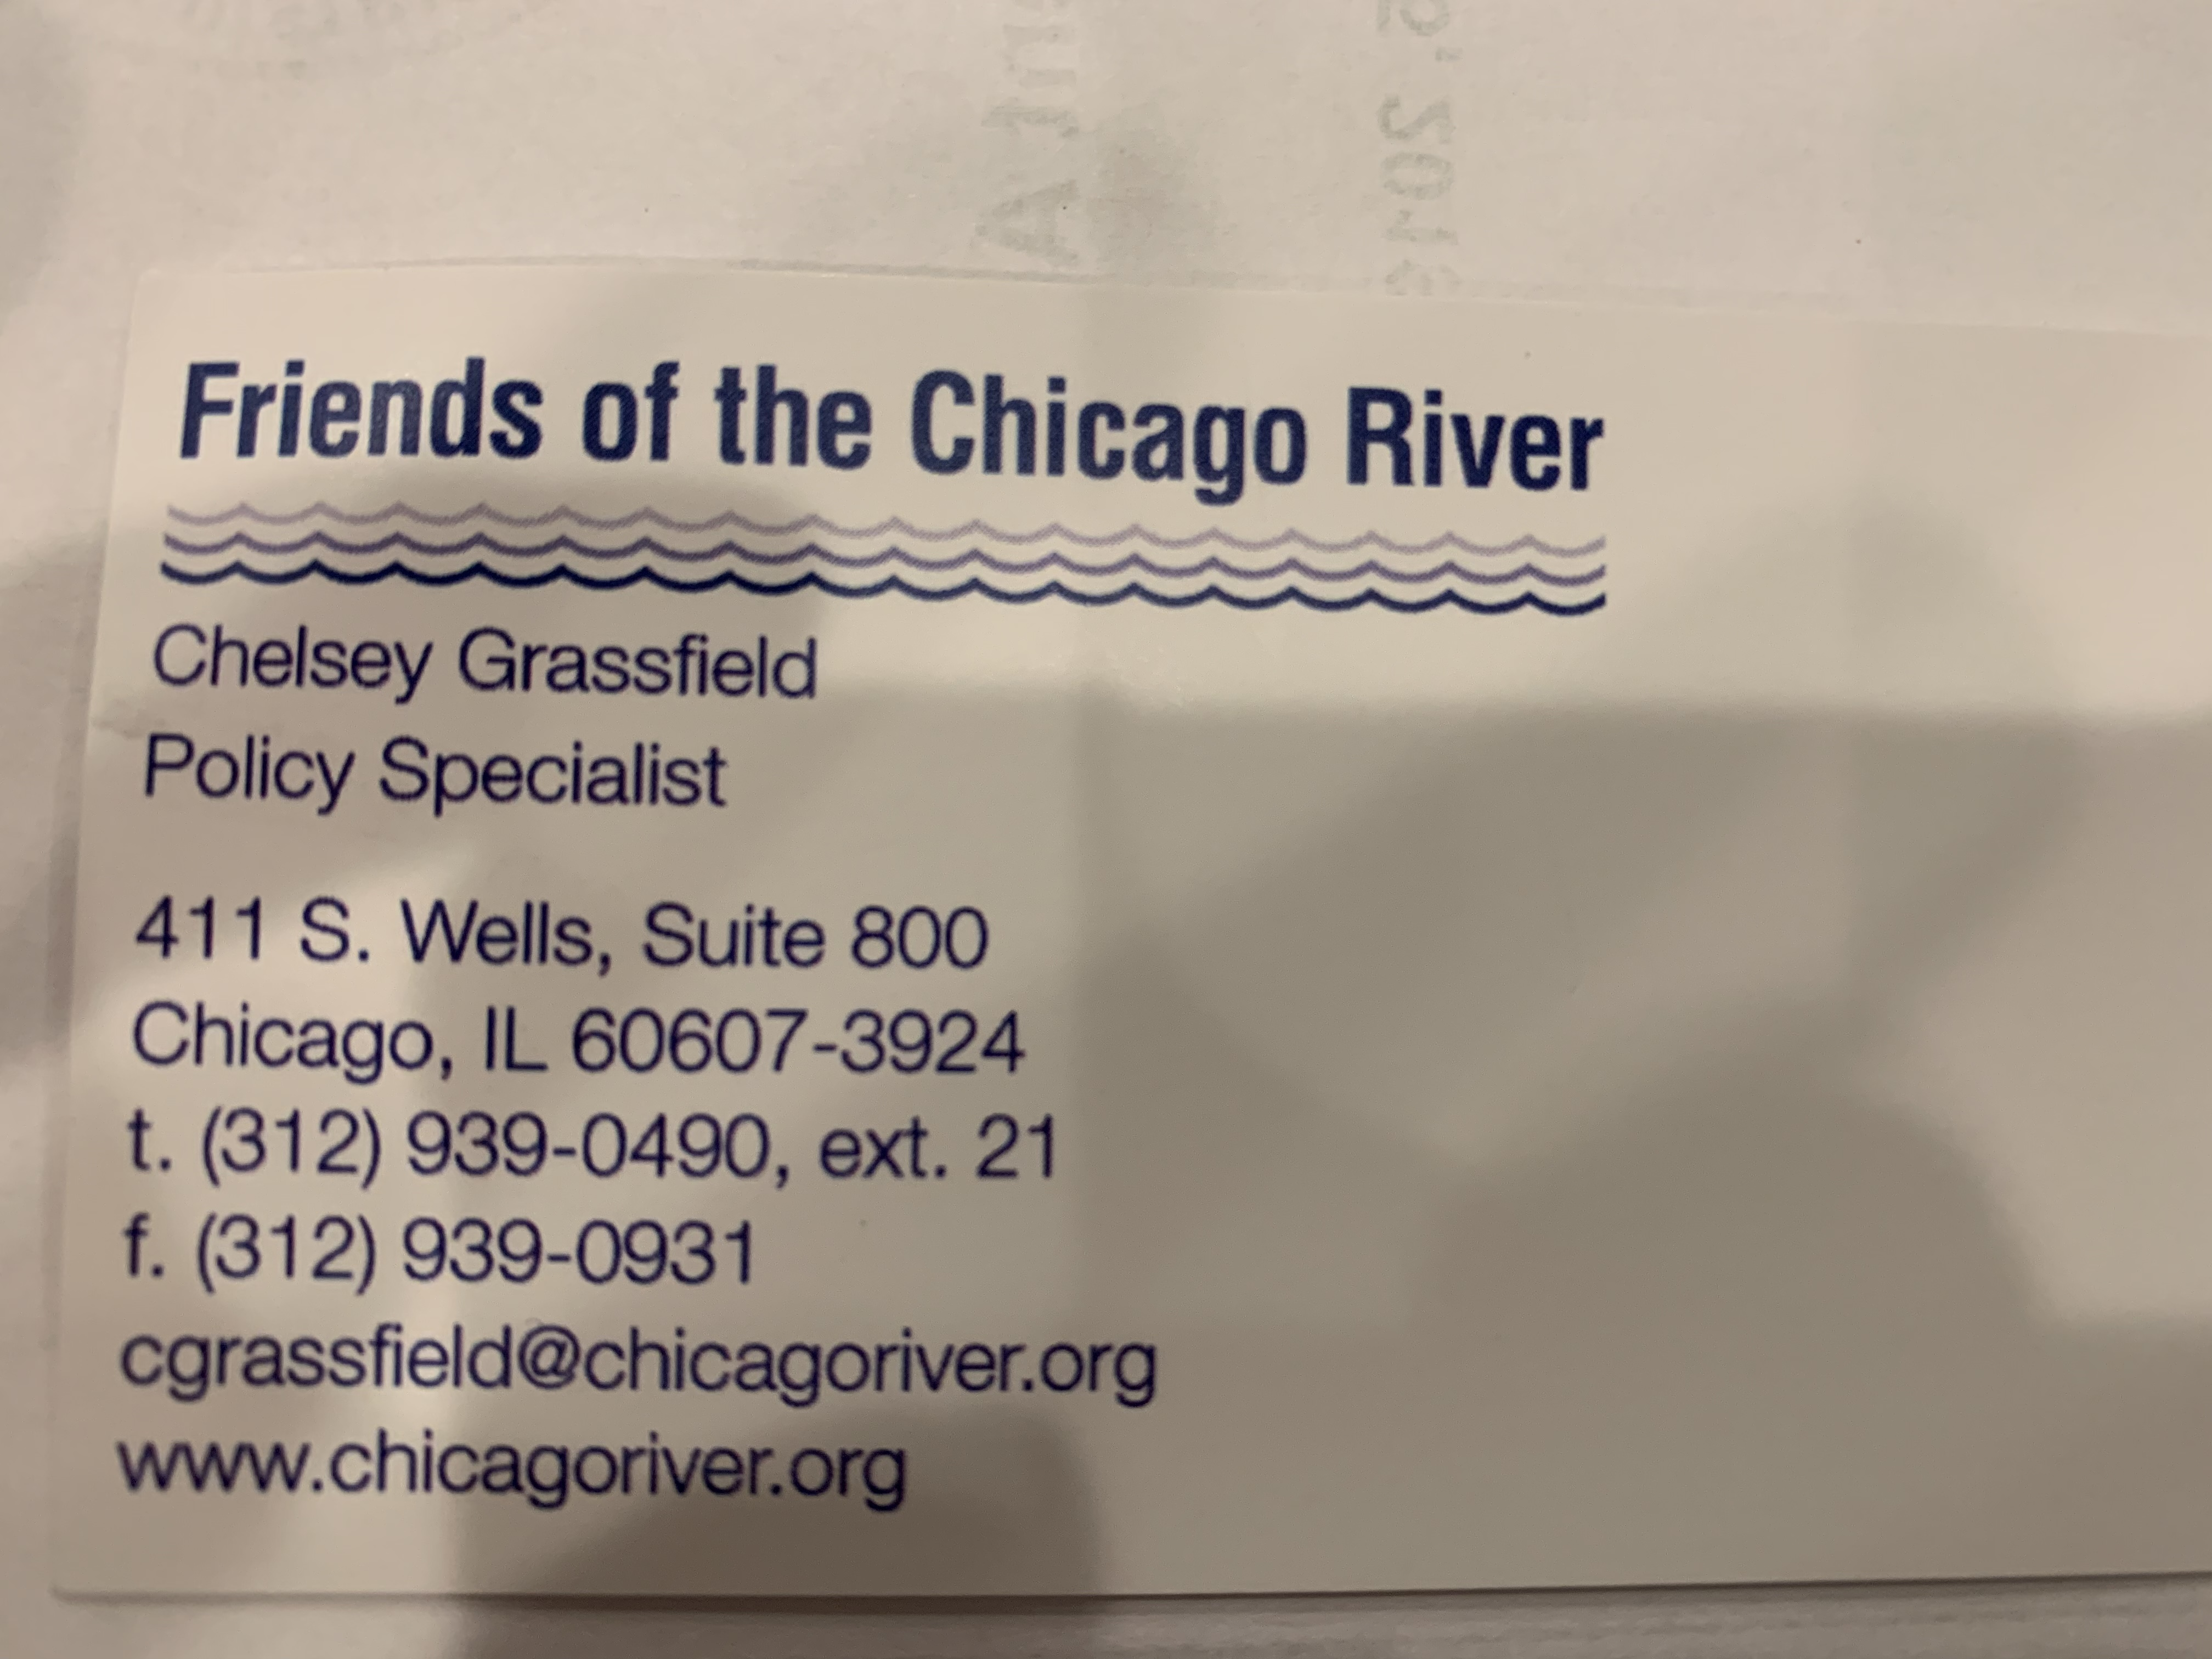 Friends of the Chicago River